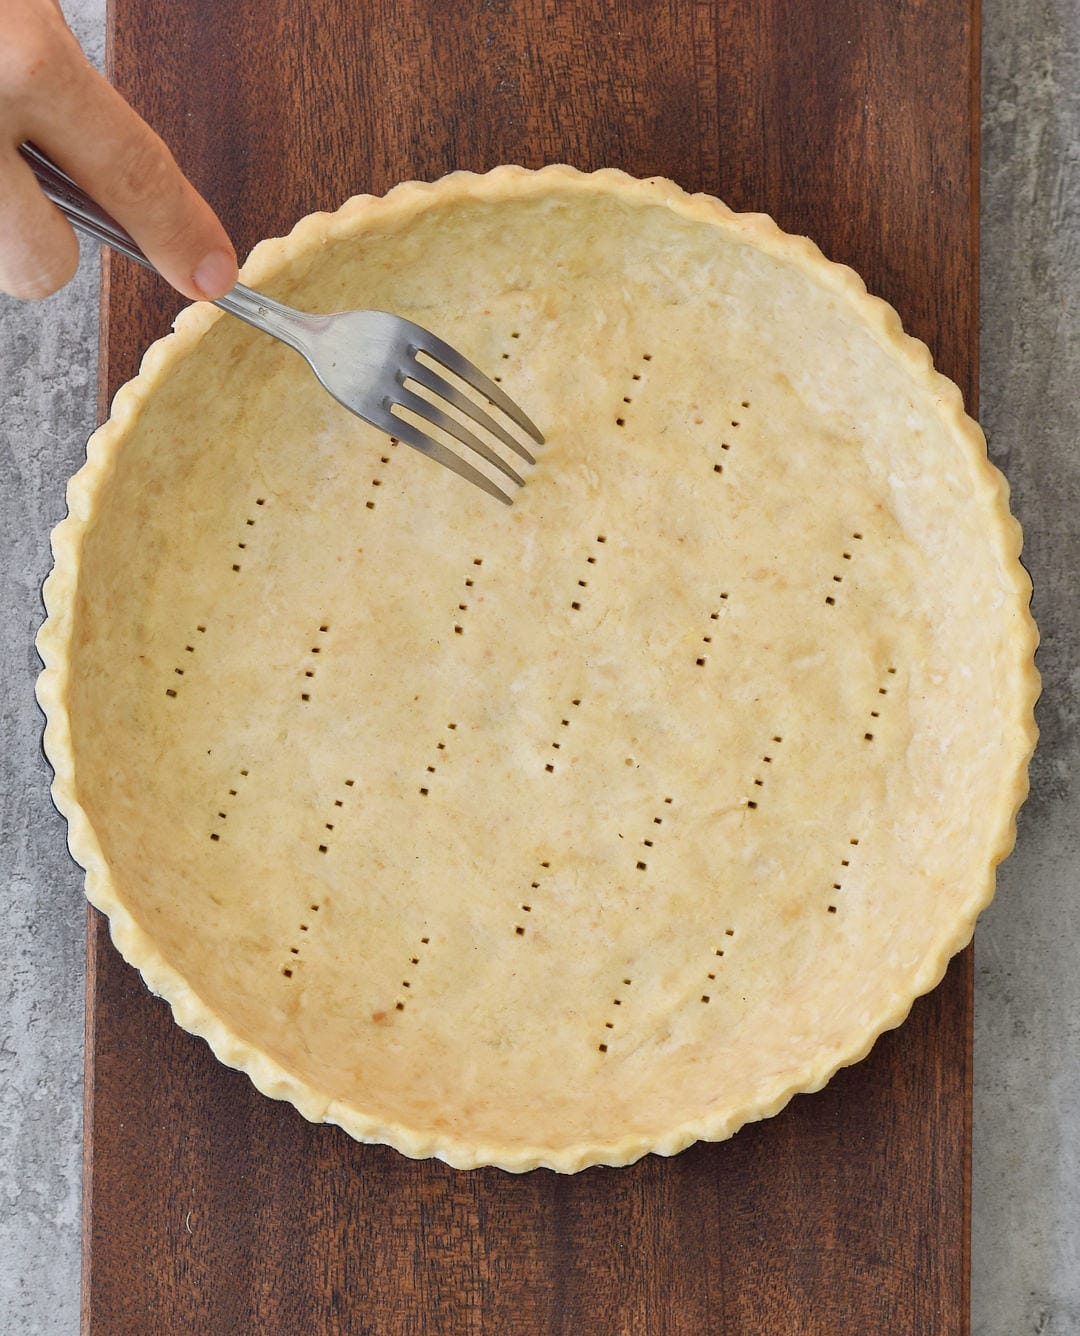 gluten-free pie crust with fork on a wooden board